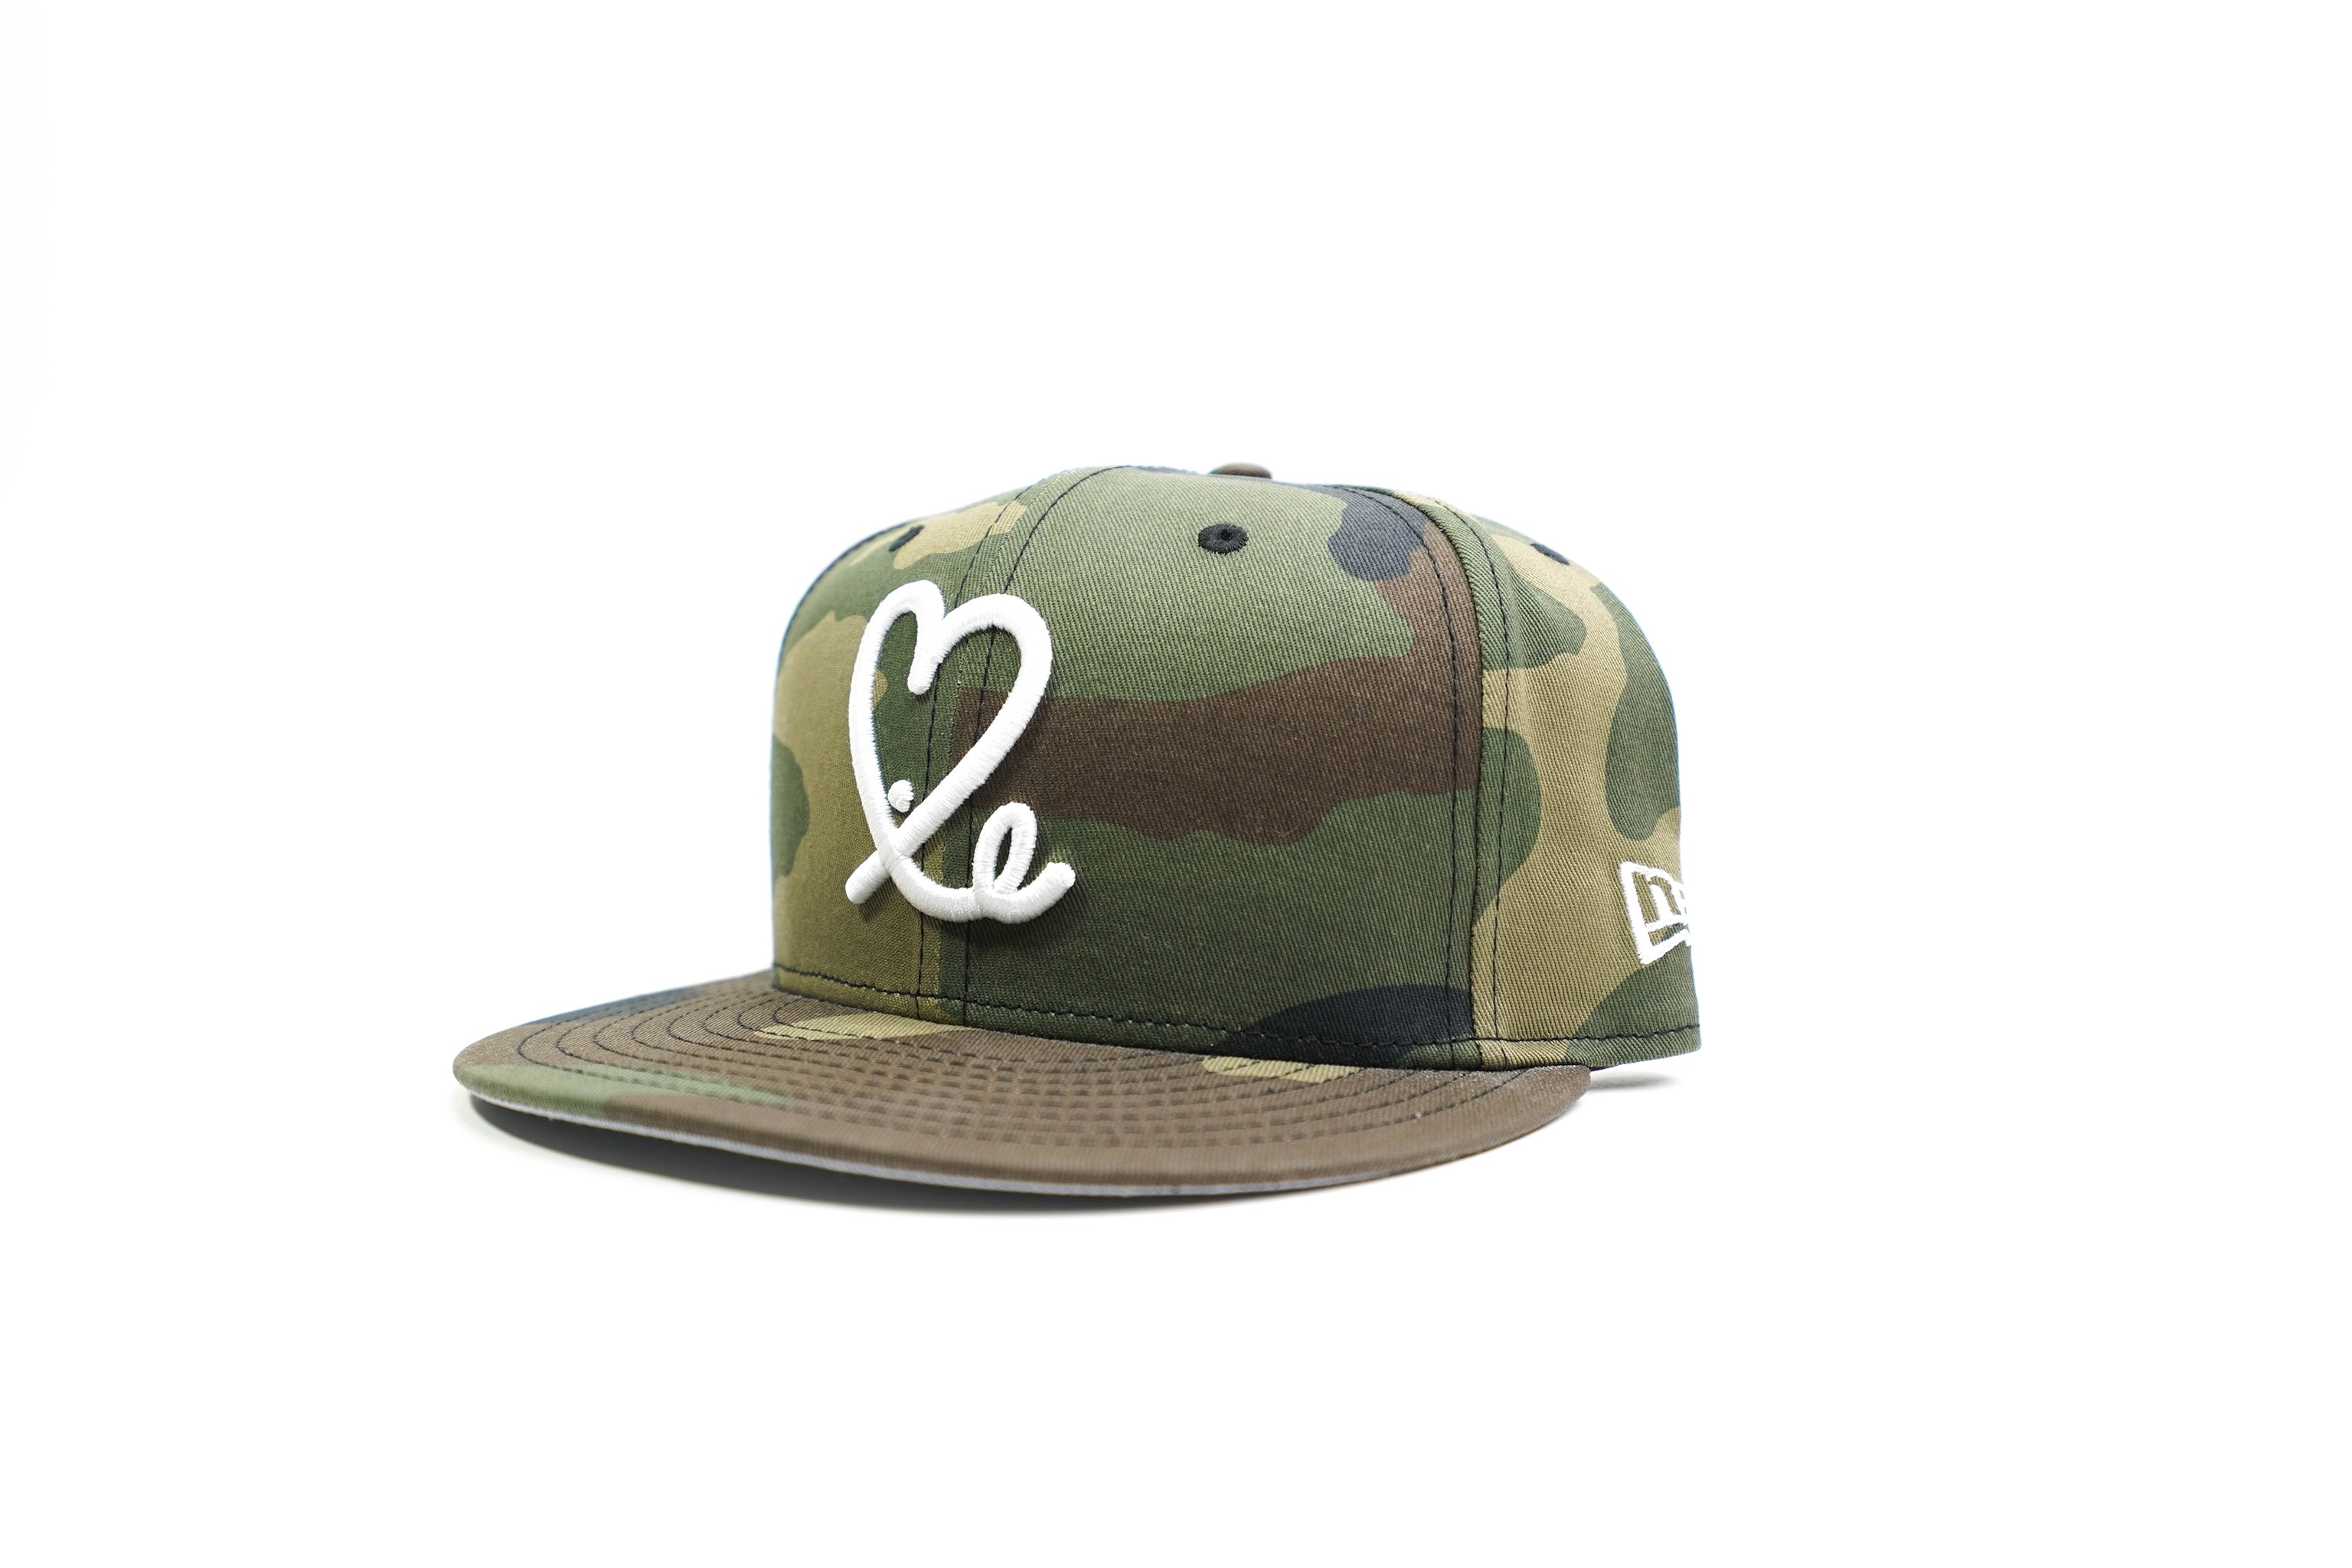 Limited Camo 1LoveIE New Era 59FIFTY Fitted Cap